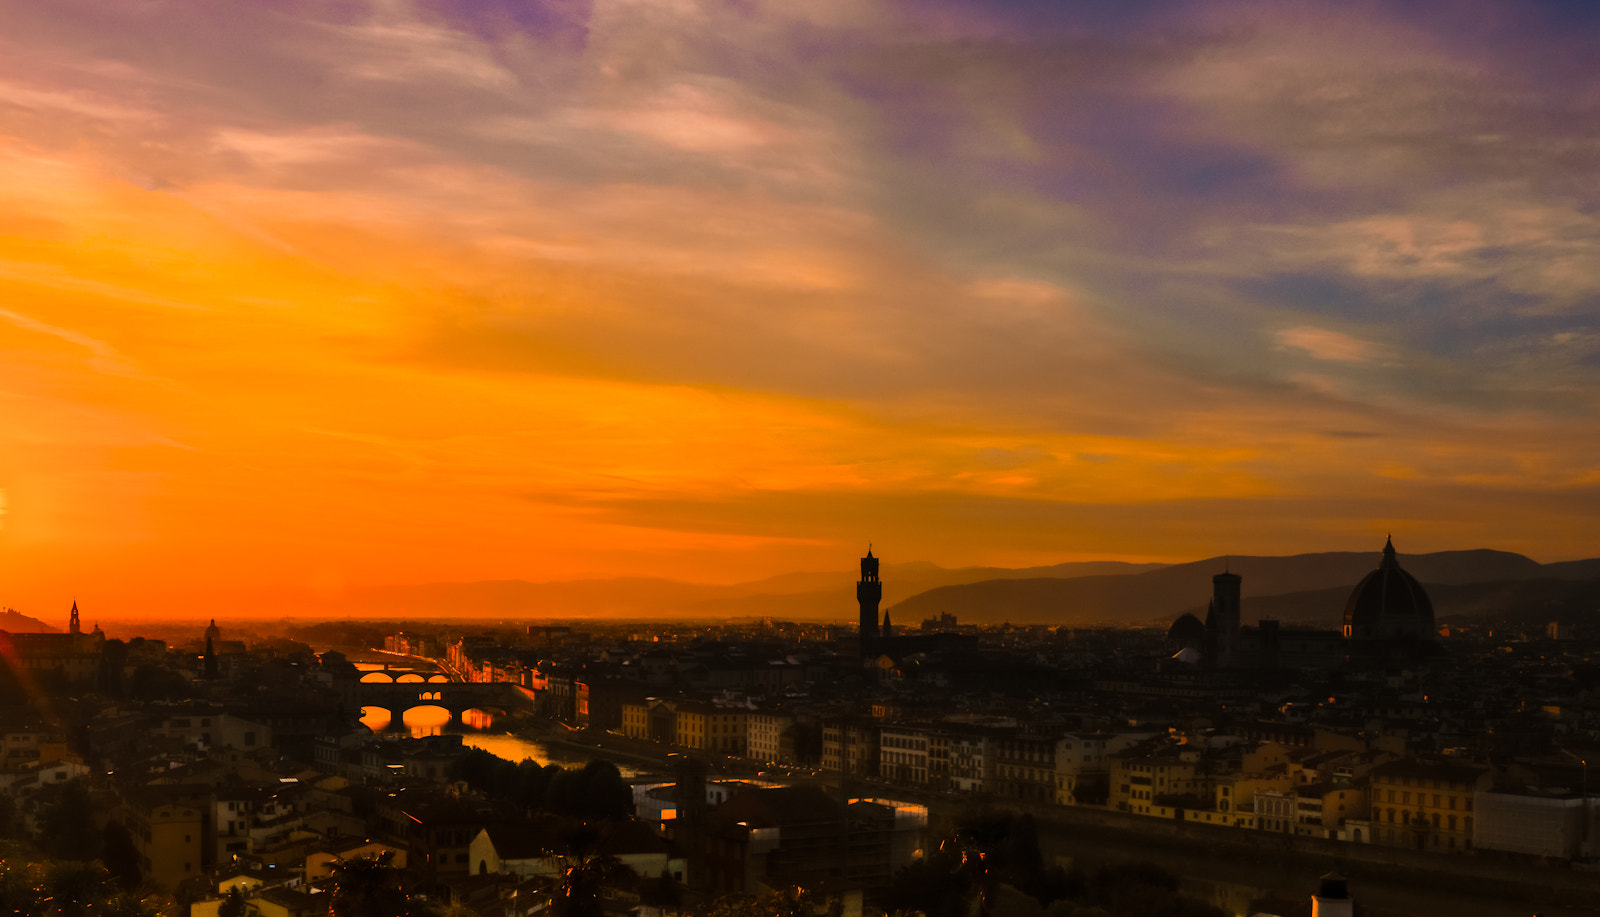 Photograph Florence at sunset by Richard Desmarais on 500px